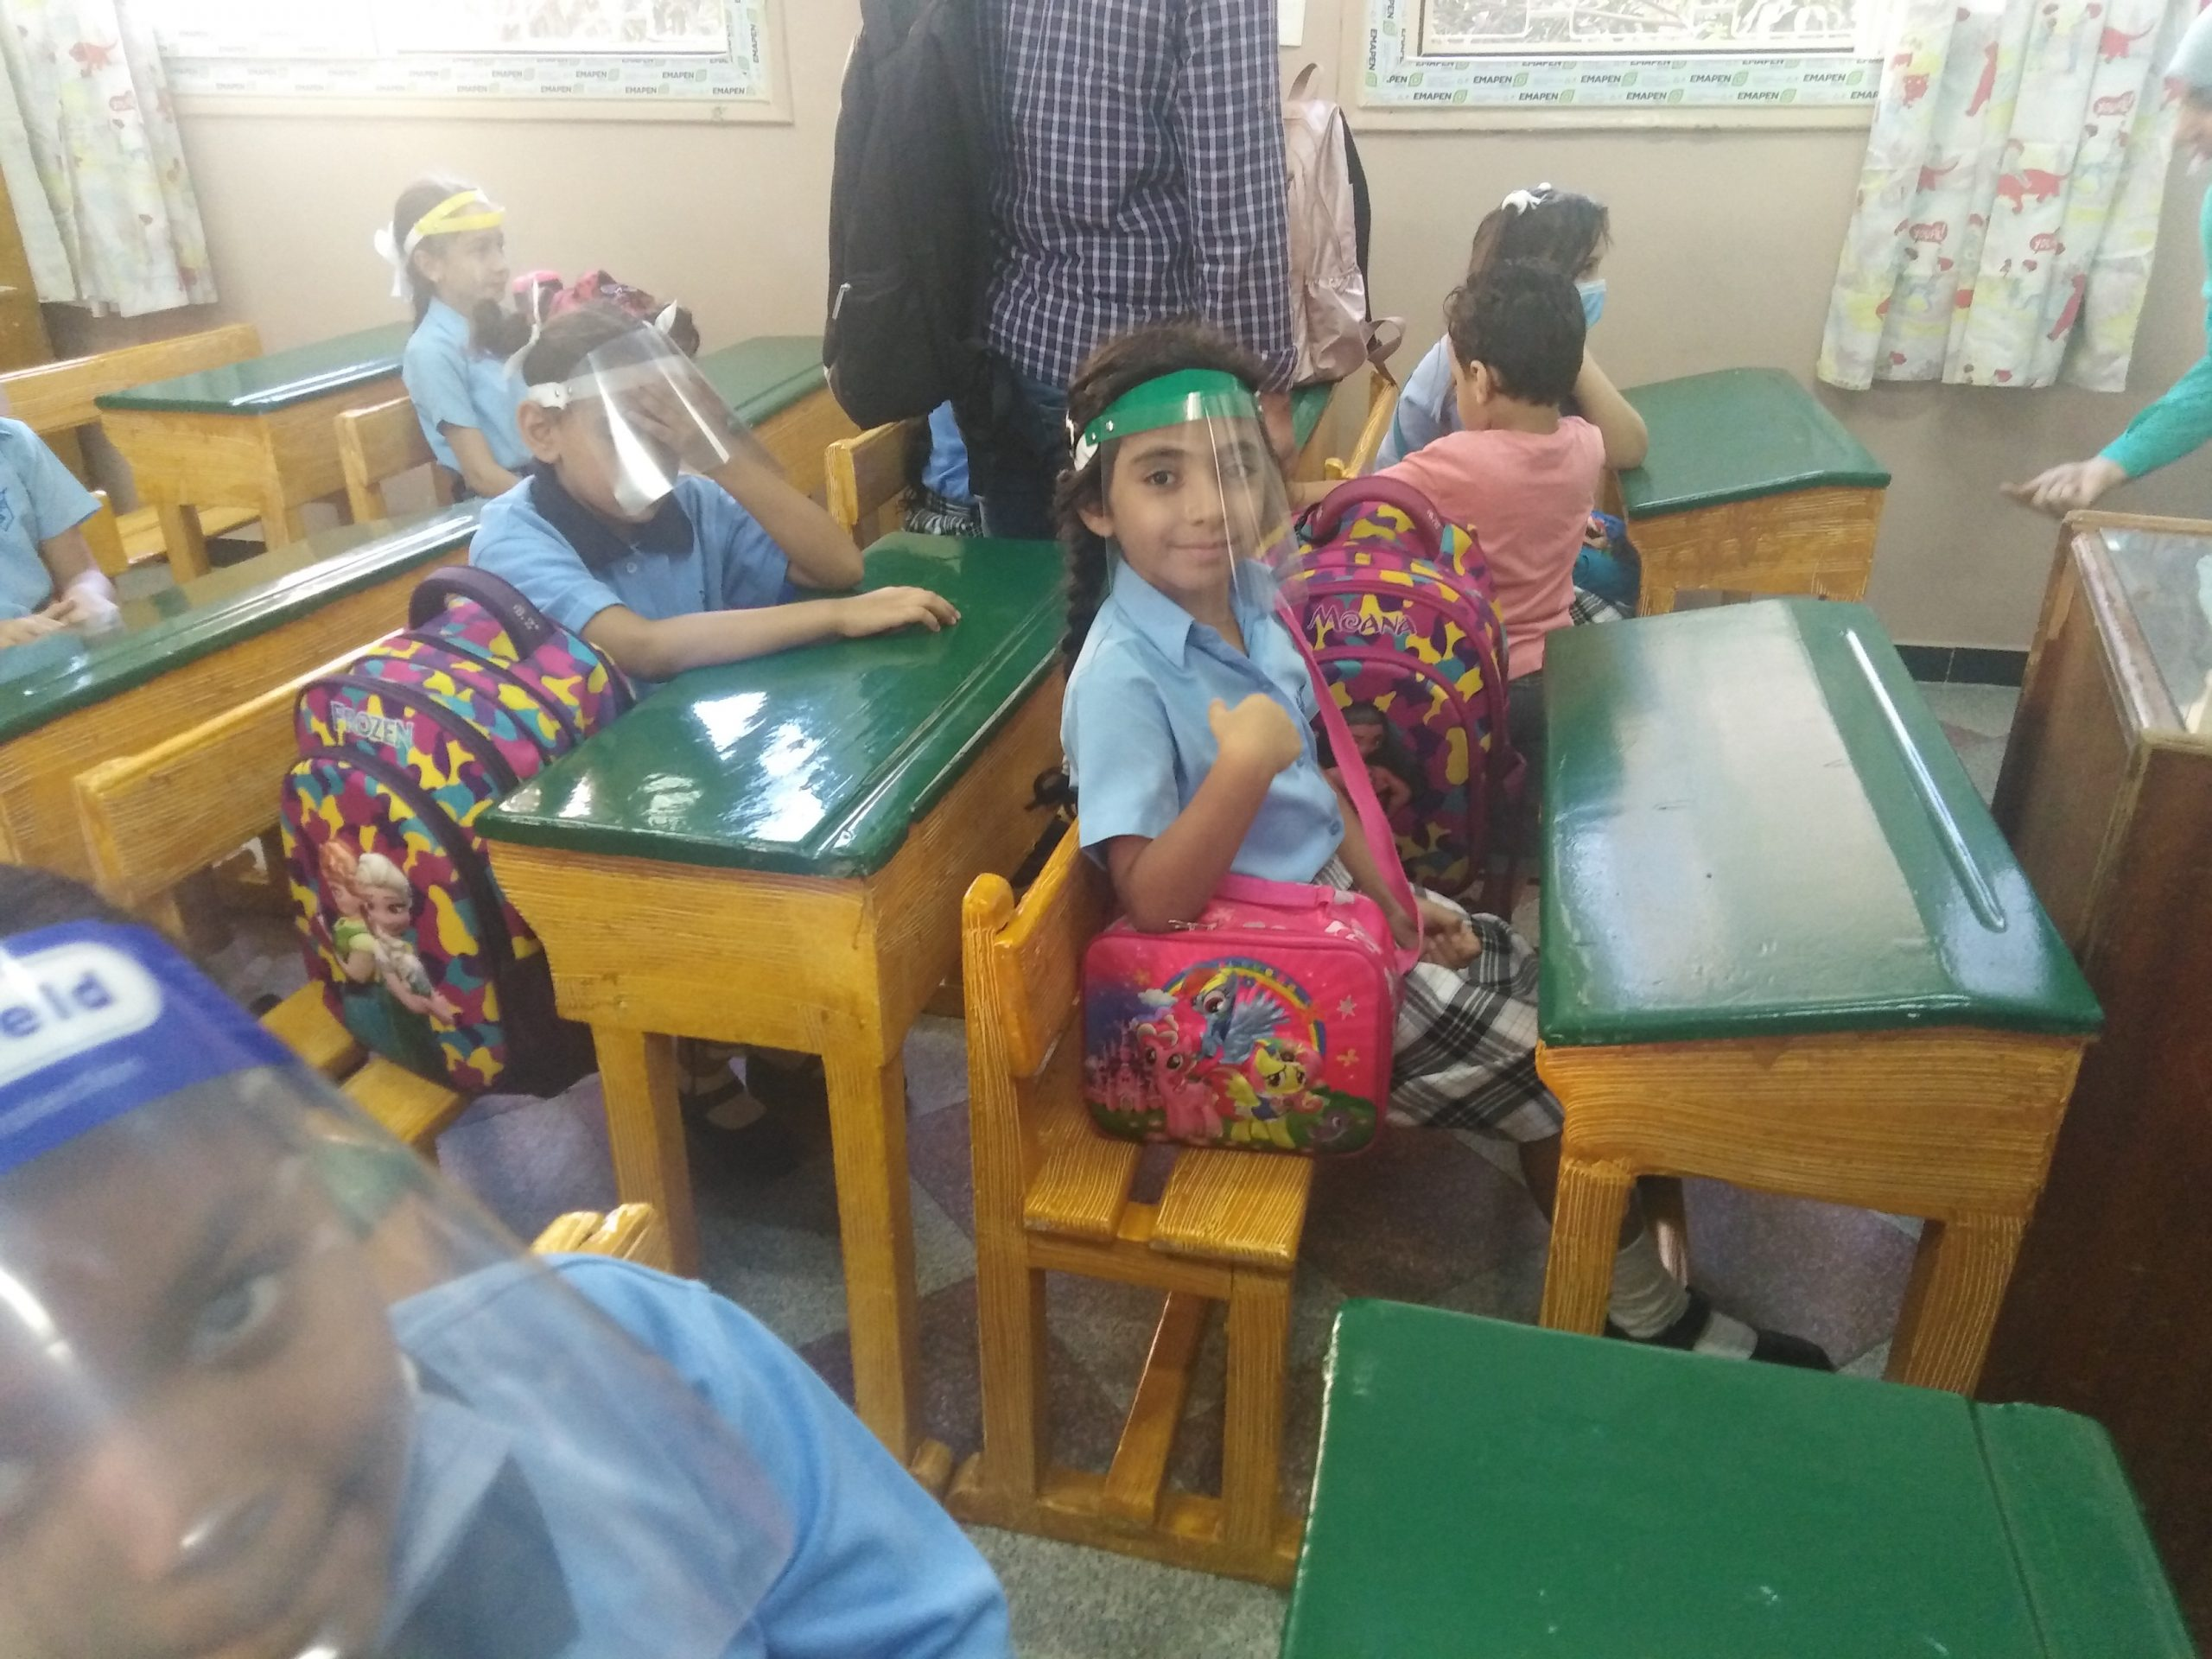 On with education reform under COVID-19